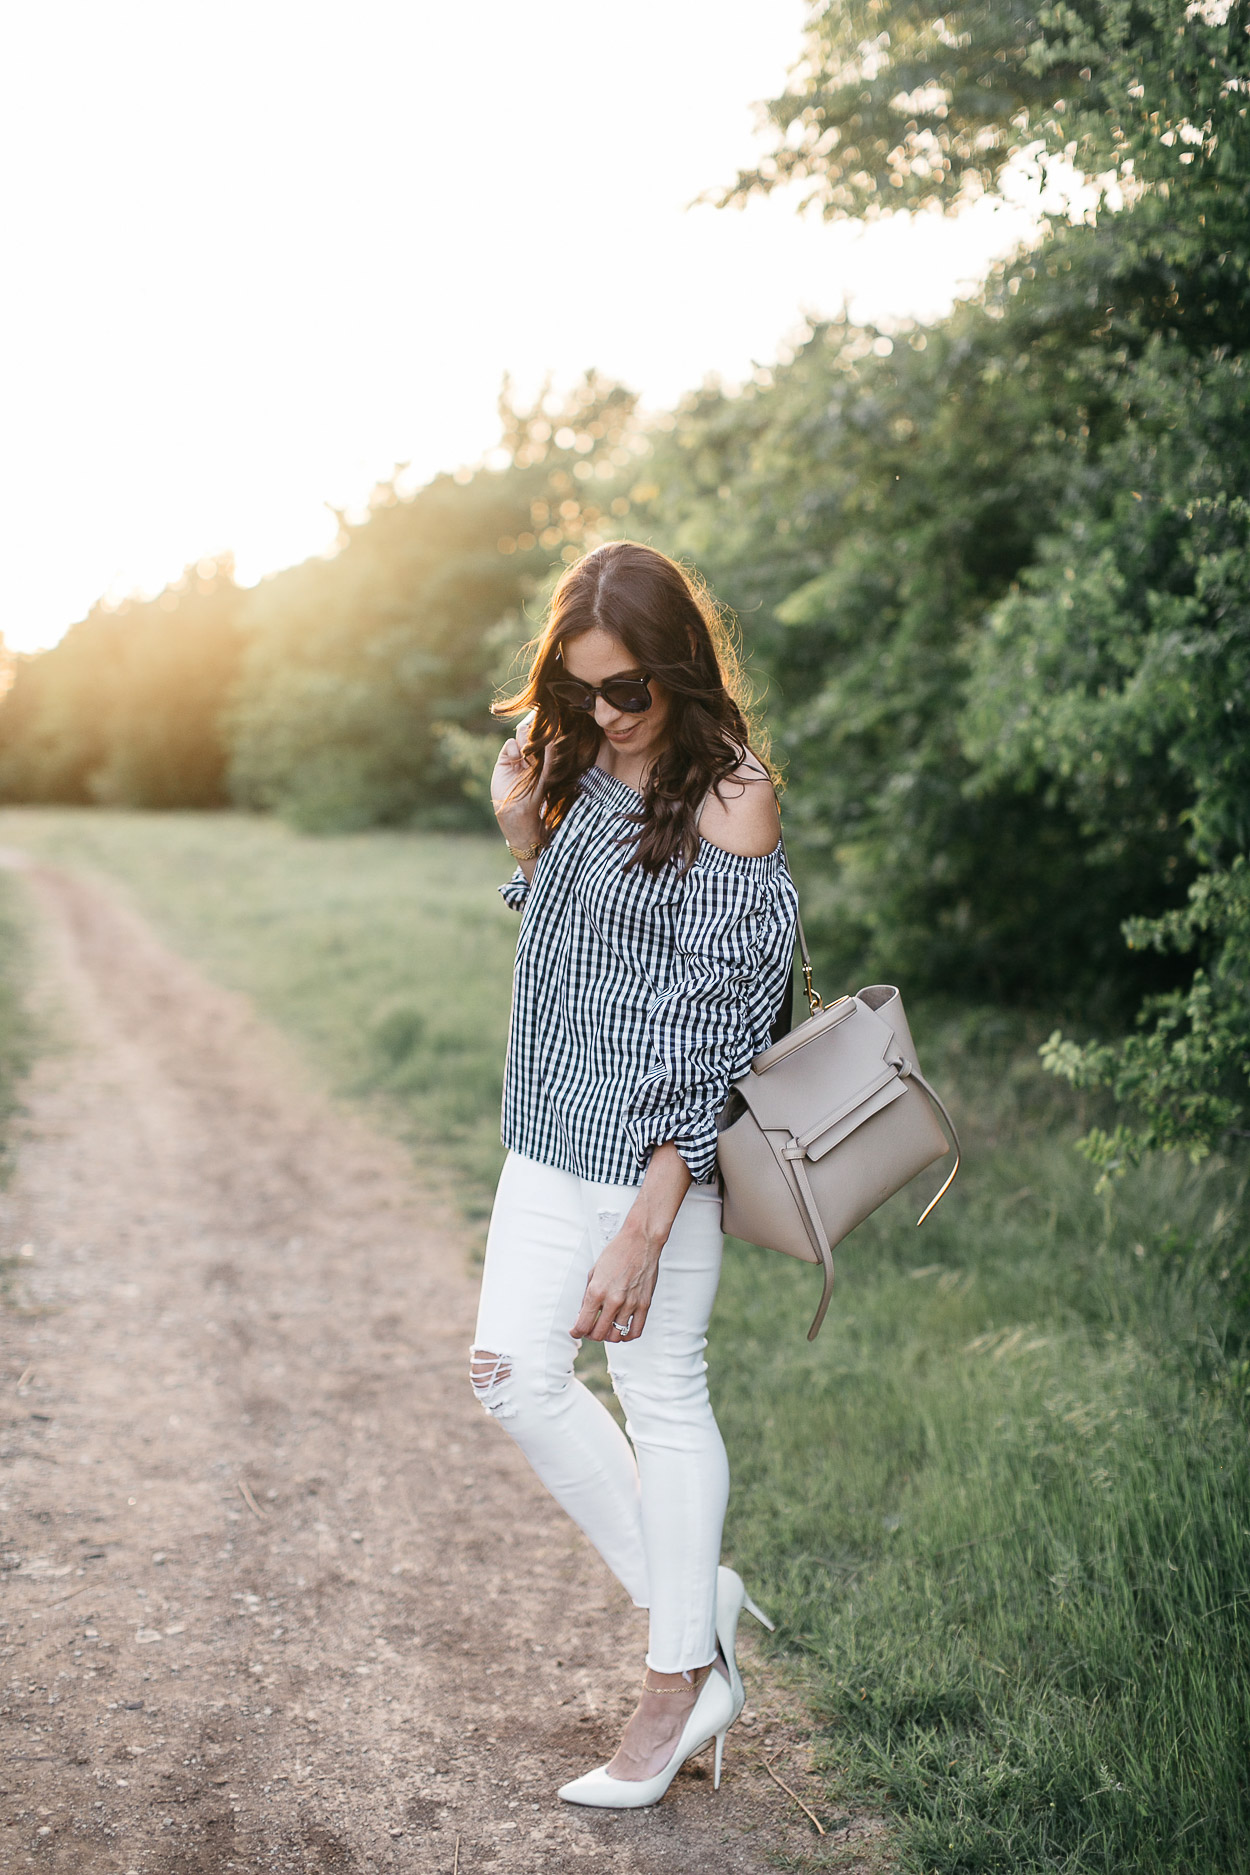 Gingham top for Spring by Chicwish worn by South Florida fashion blogger Amanda of AGlamLifestyle with Celine Belt bag and AG Jeans white legging jeans